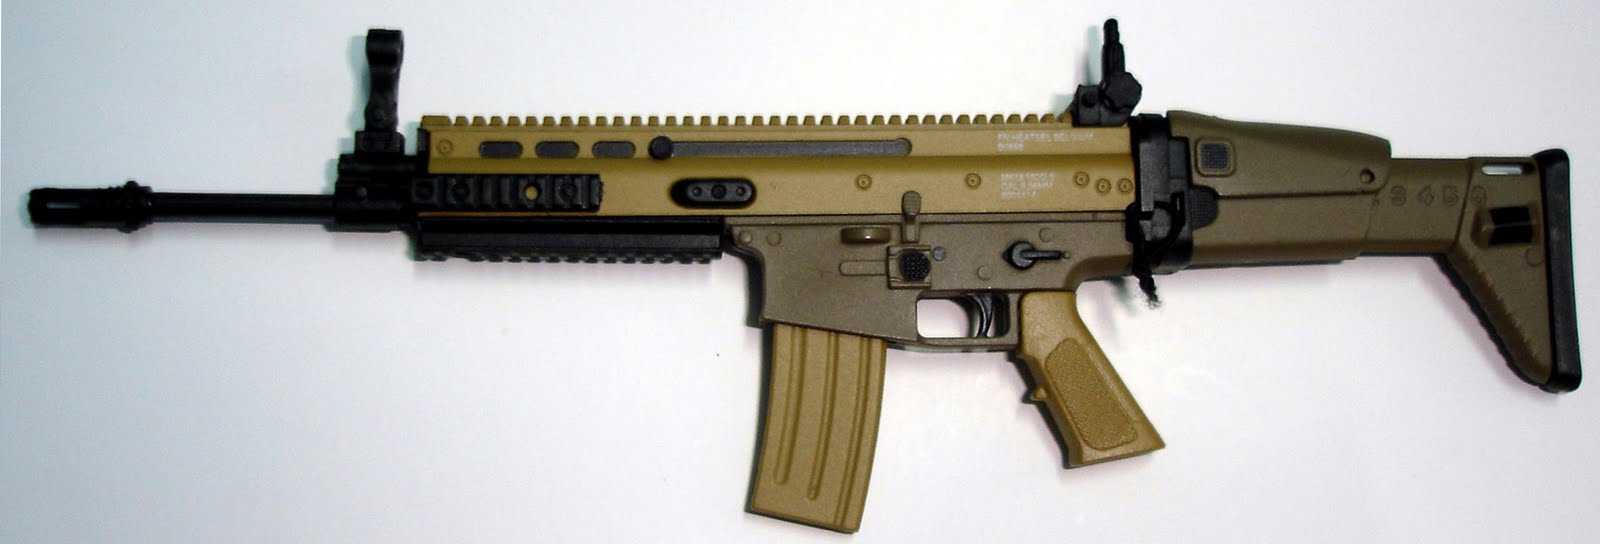 ASSAULT RIFLLE SERIES M-16A4 AND FN MK16 SCAR LIGH ~ forcesmilitary